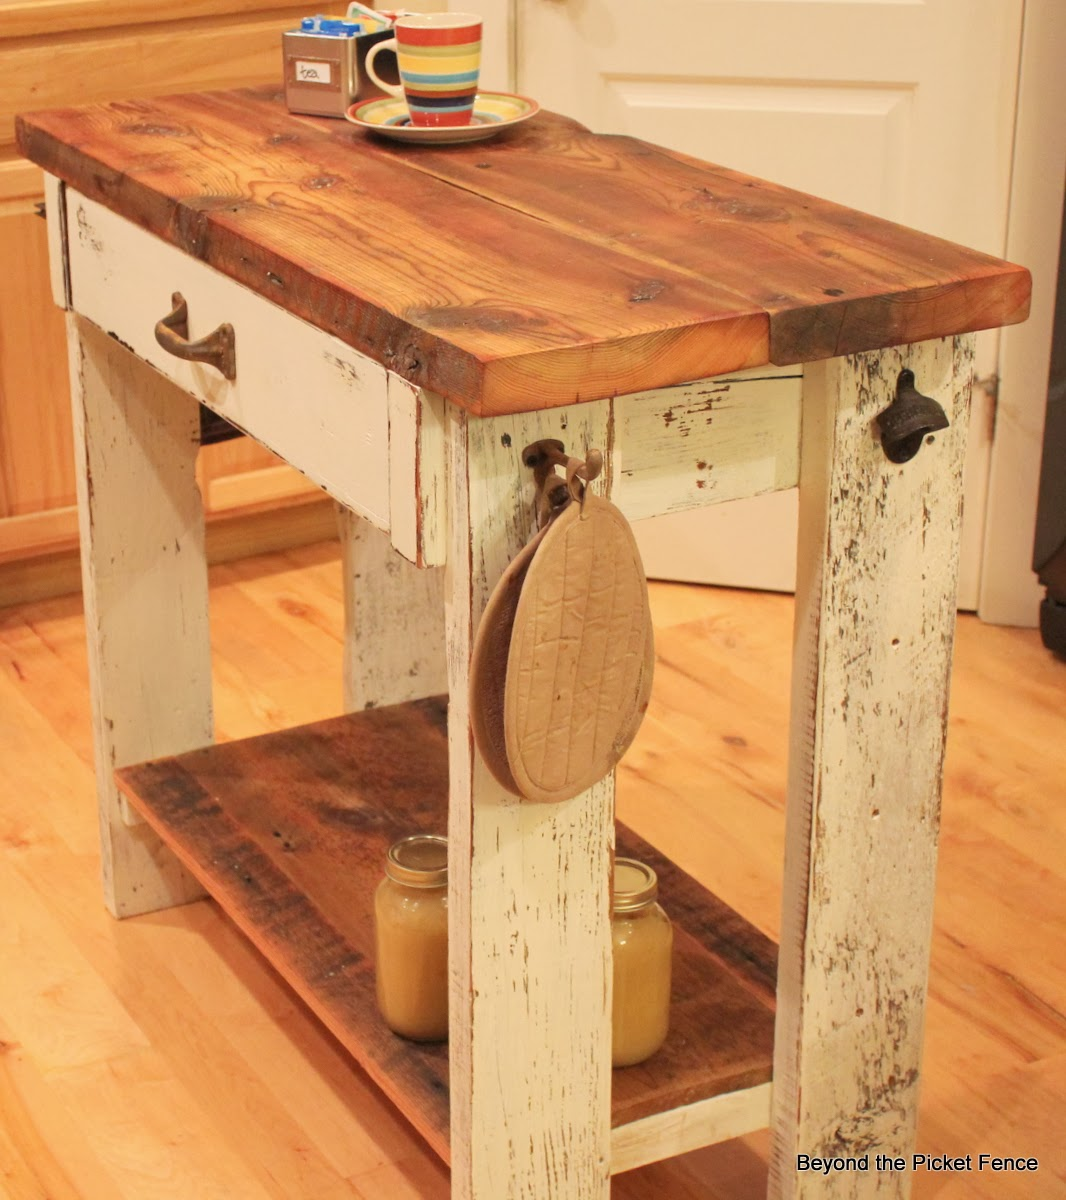 Beyond the picket fence island shmisland for Island woodworking